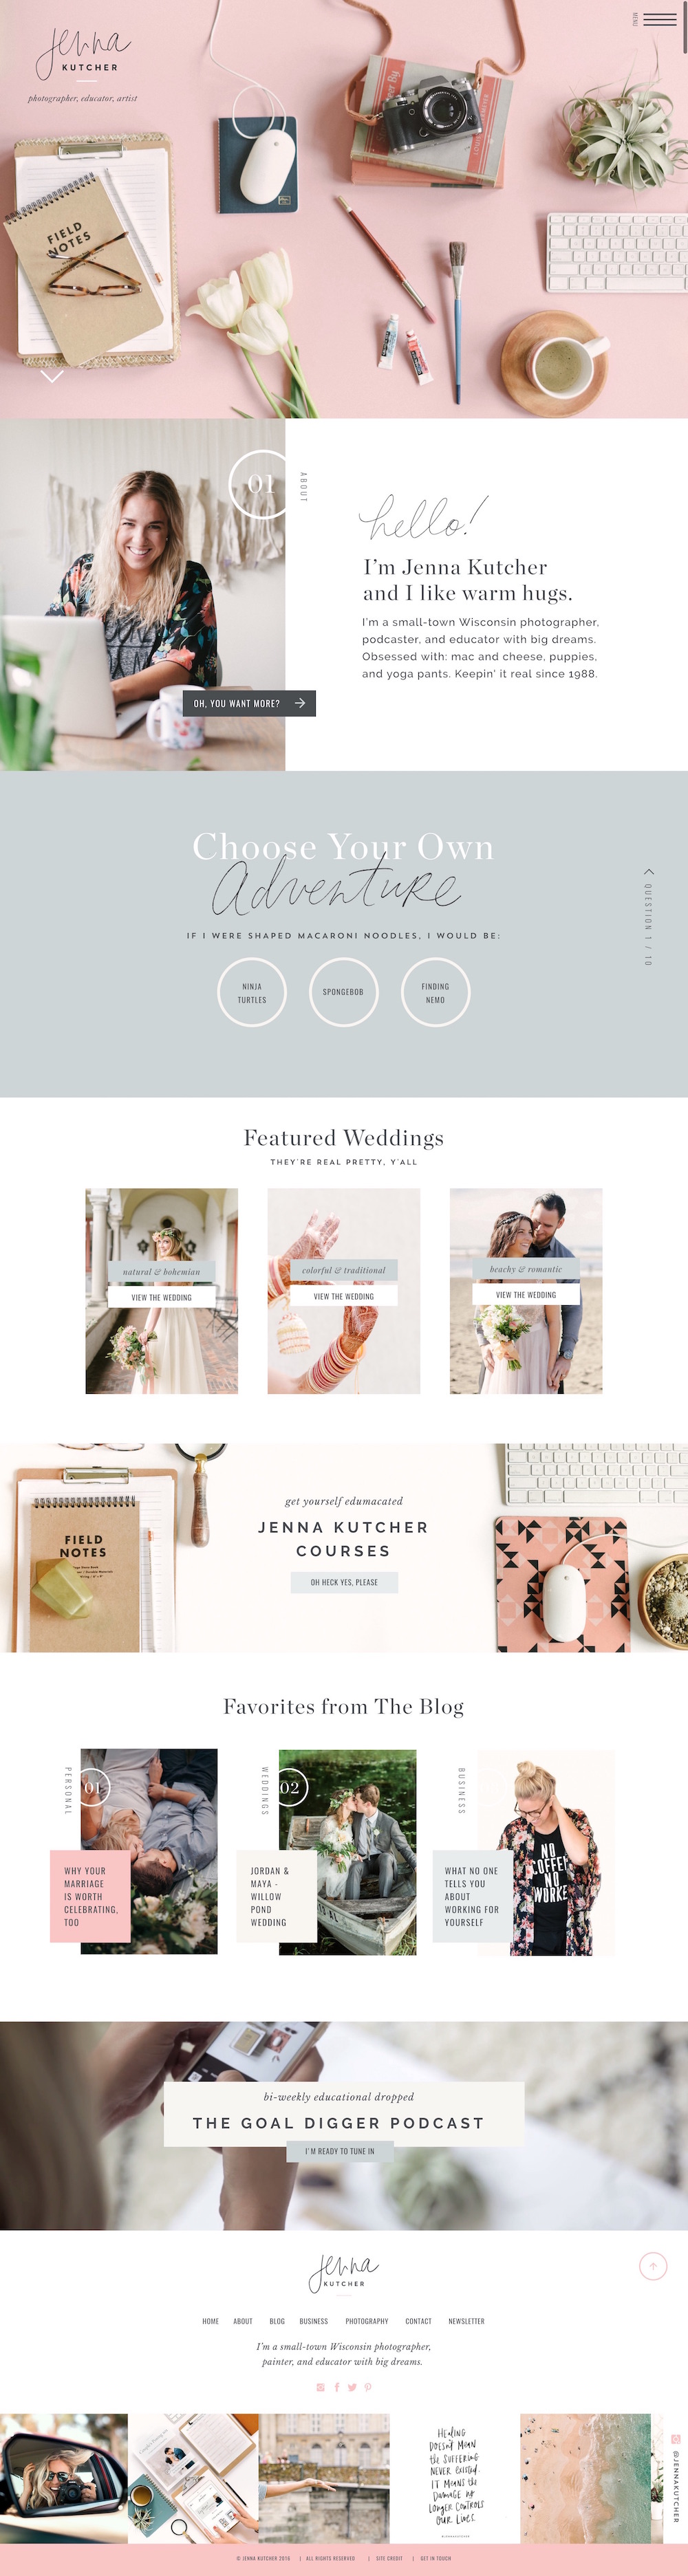 Jenna Kutcher ShowIt website designed by Jen Olmstead.jpg